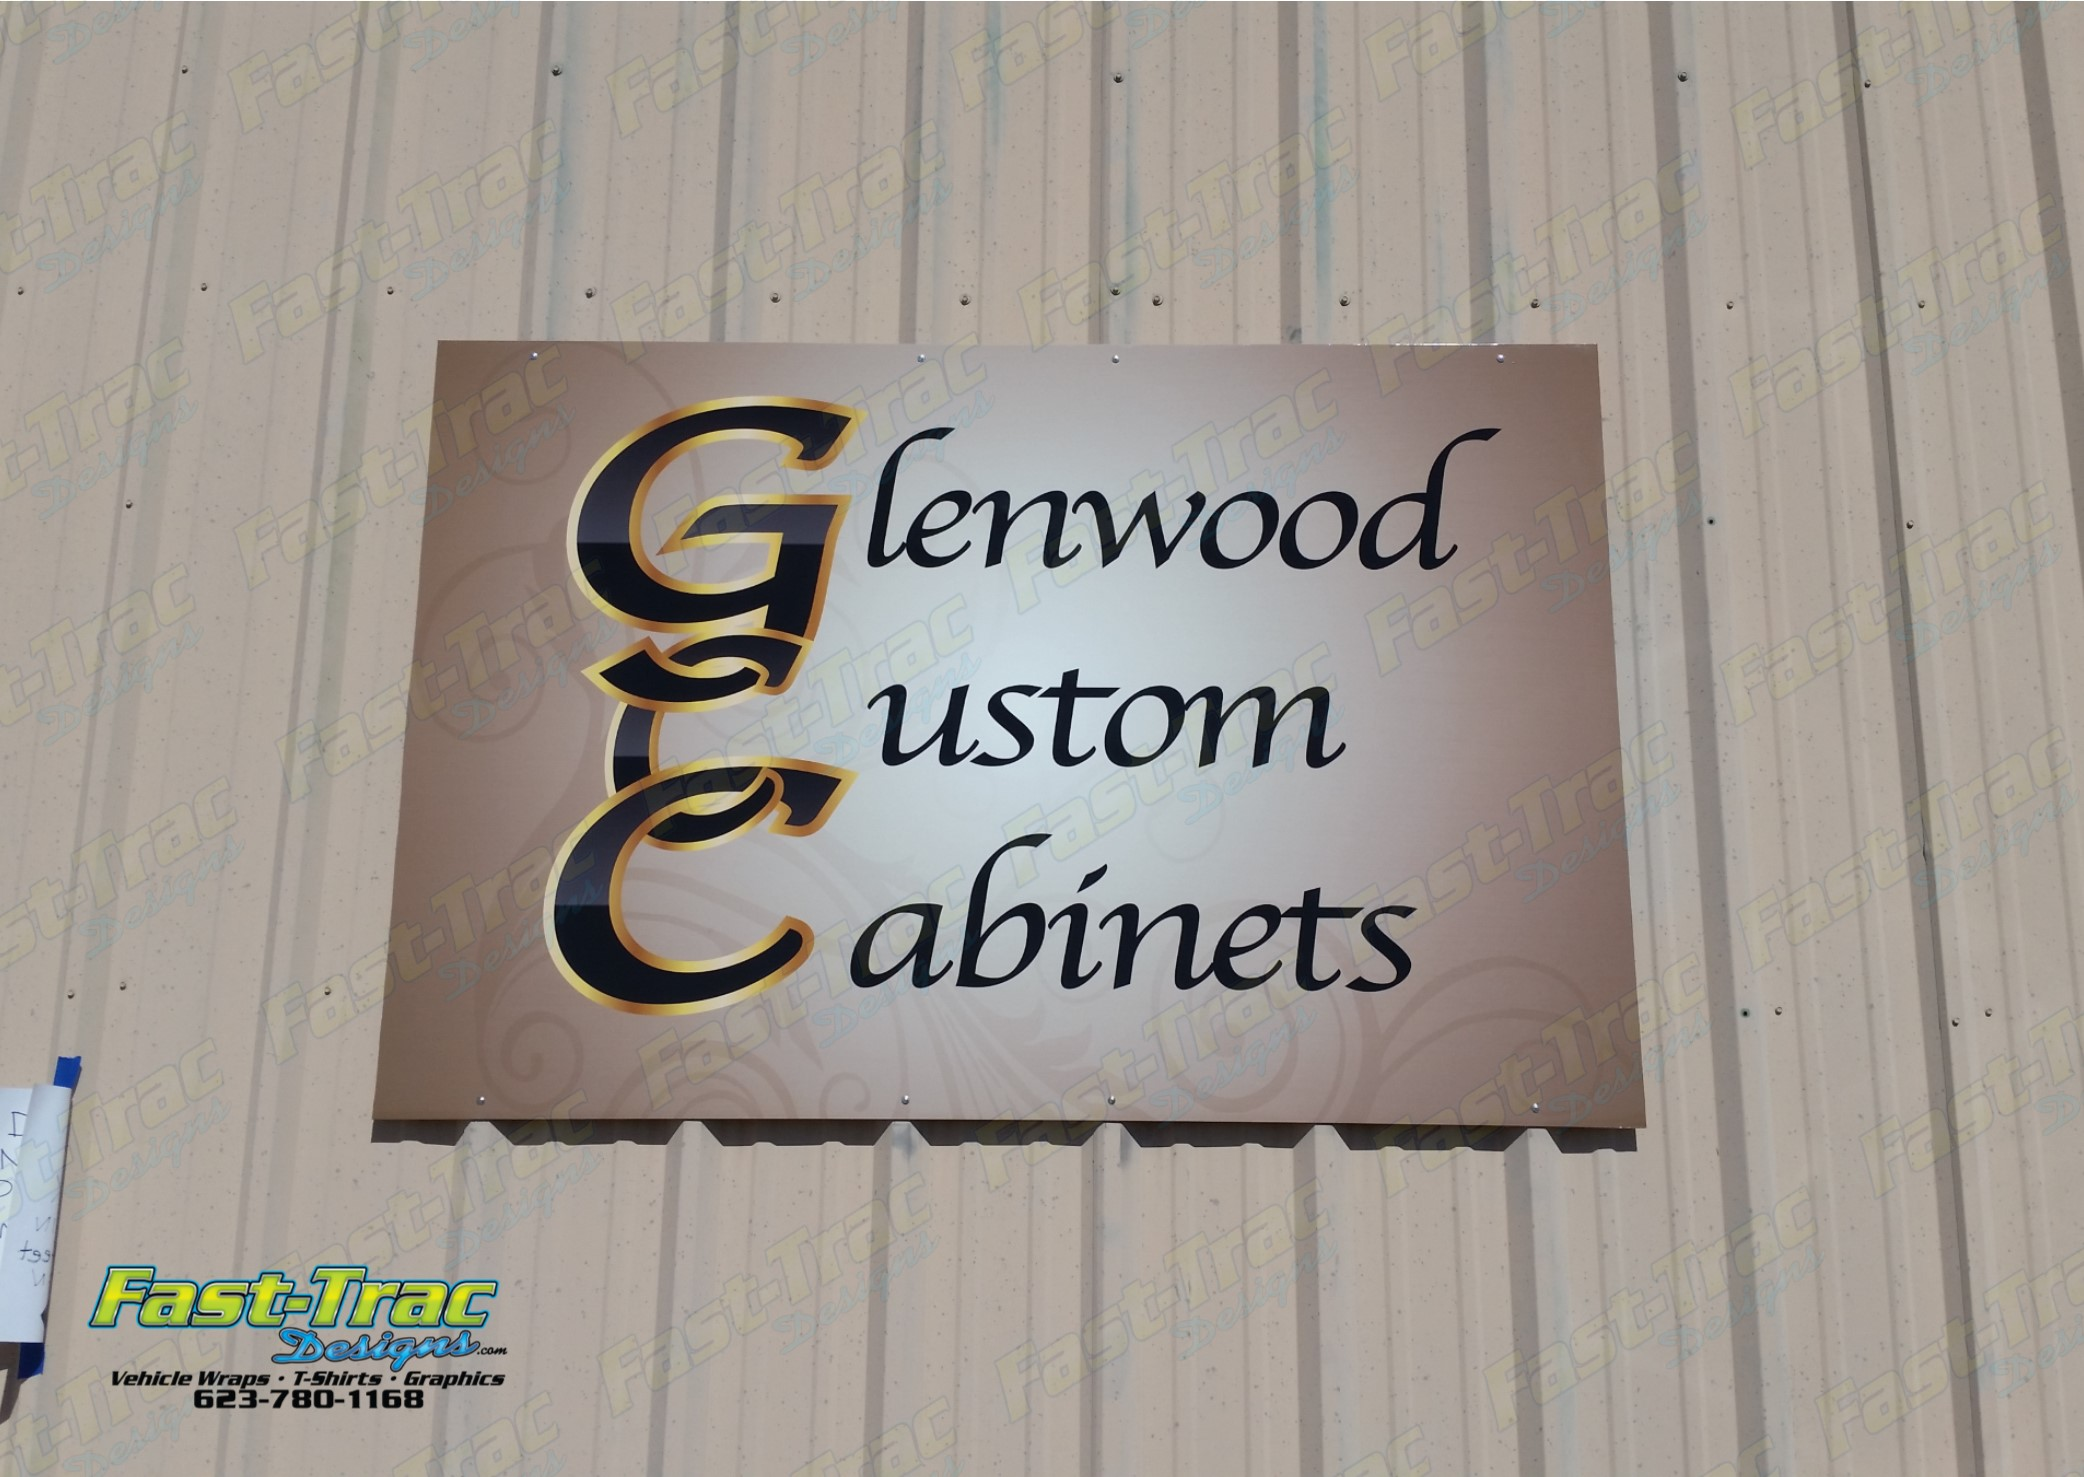 Glenwood Custom Cabinets Fast Trac Designs Vehicle Wraps Screen Printing Signs Phoenix